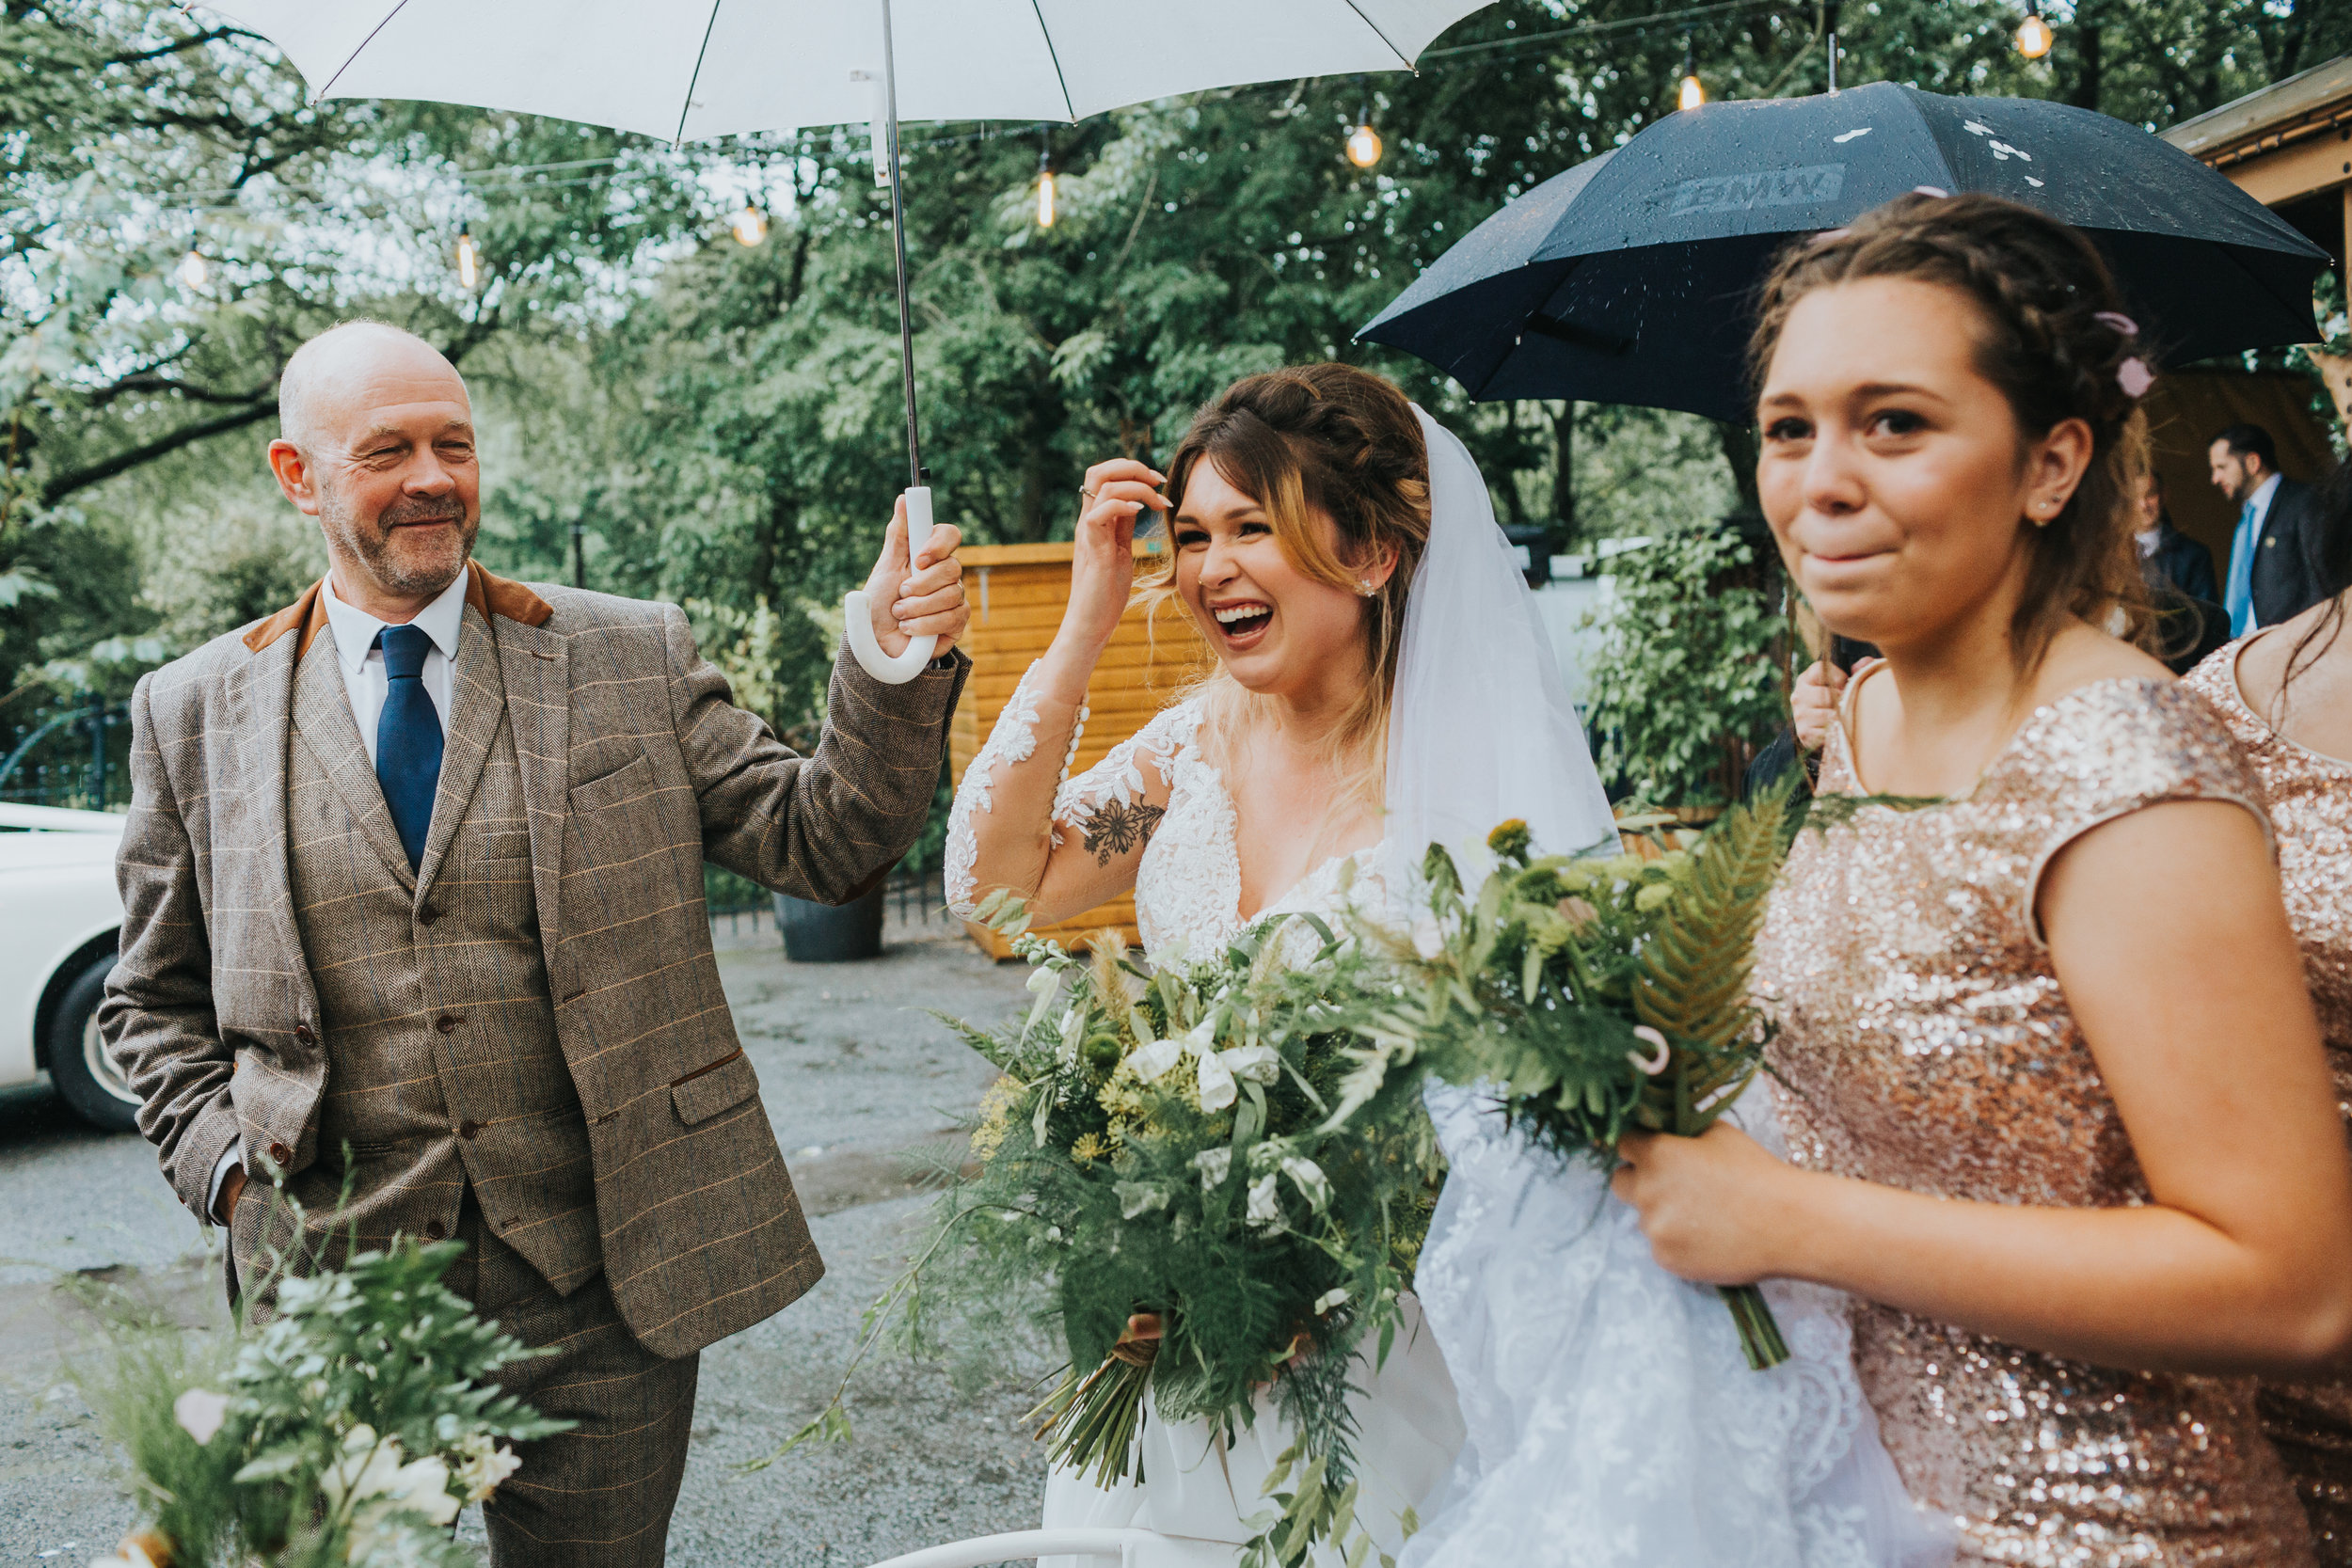 Bride laughs with wedding guests.